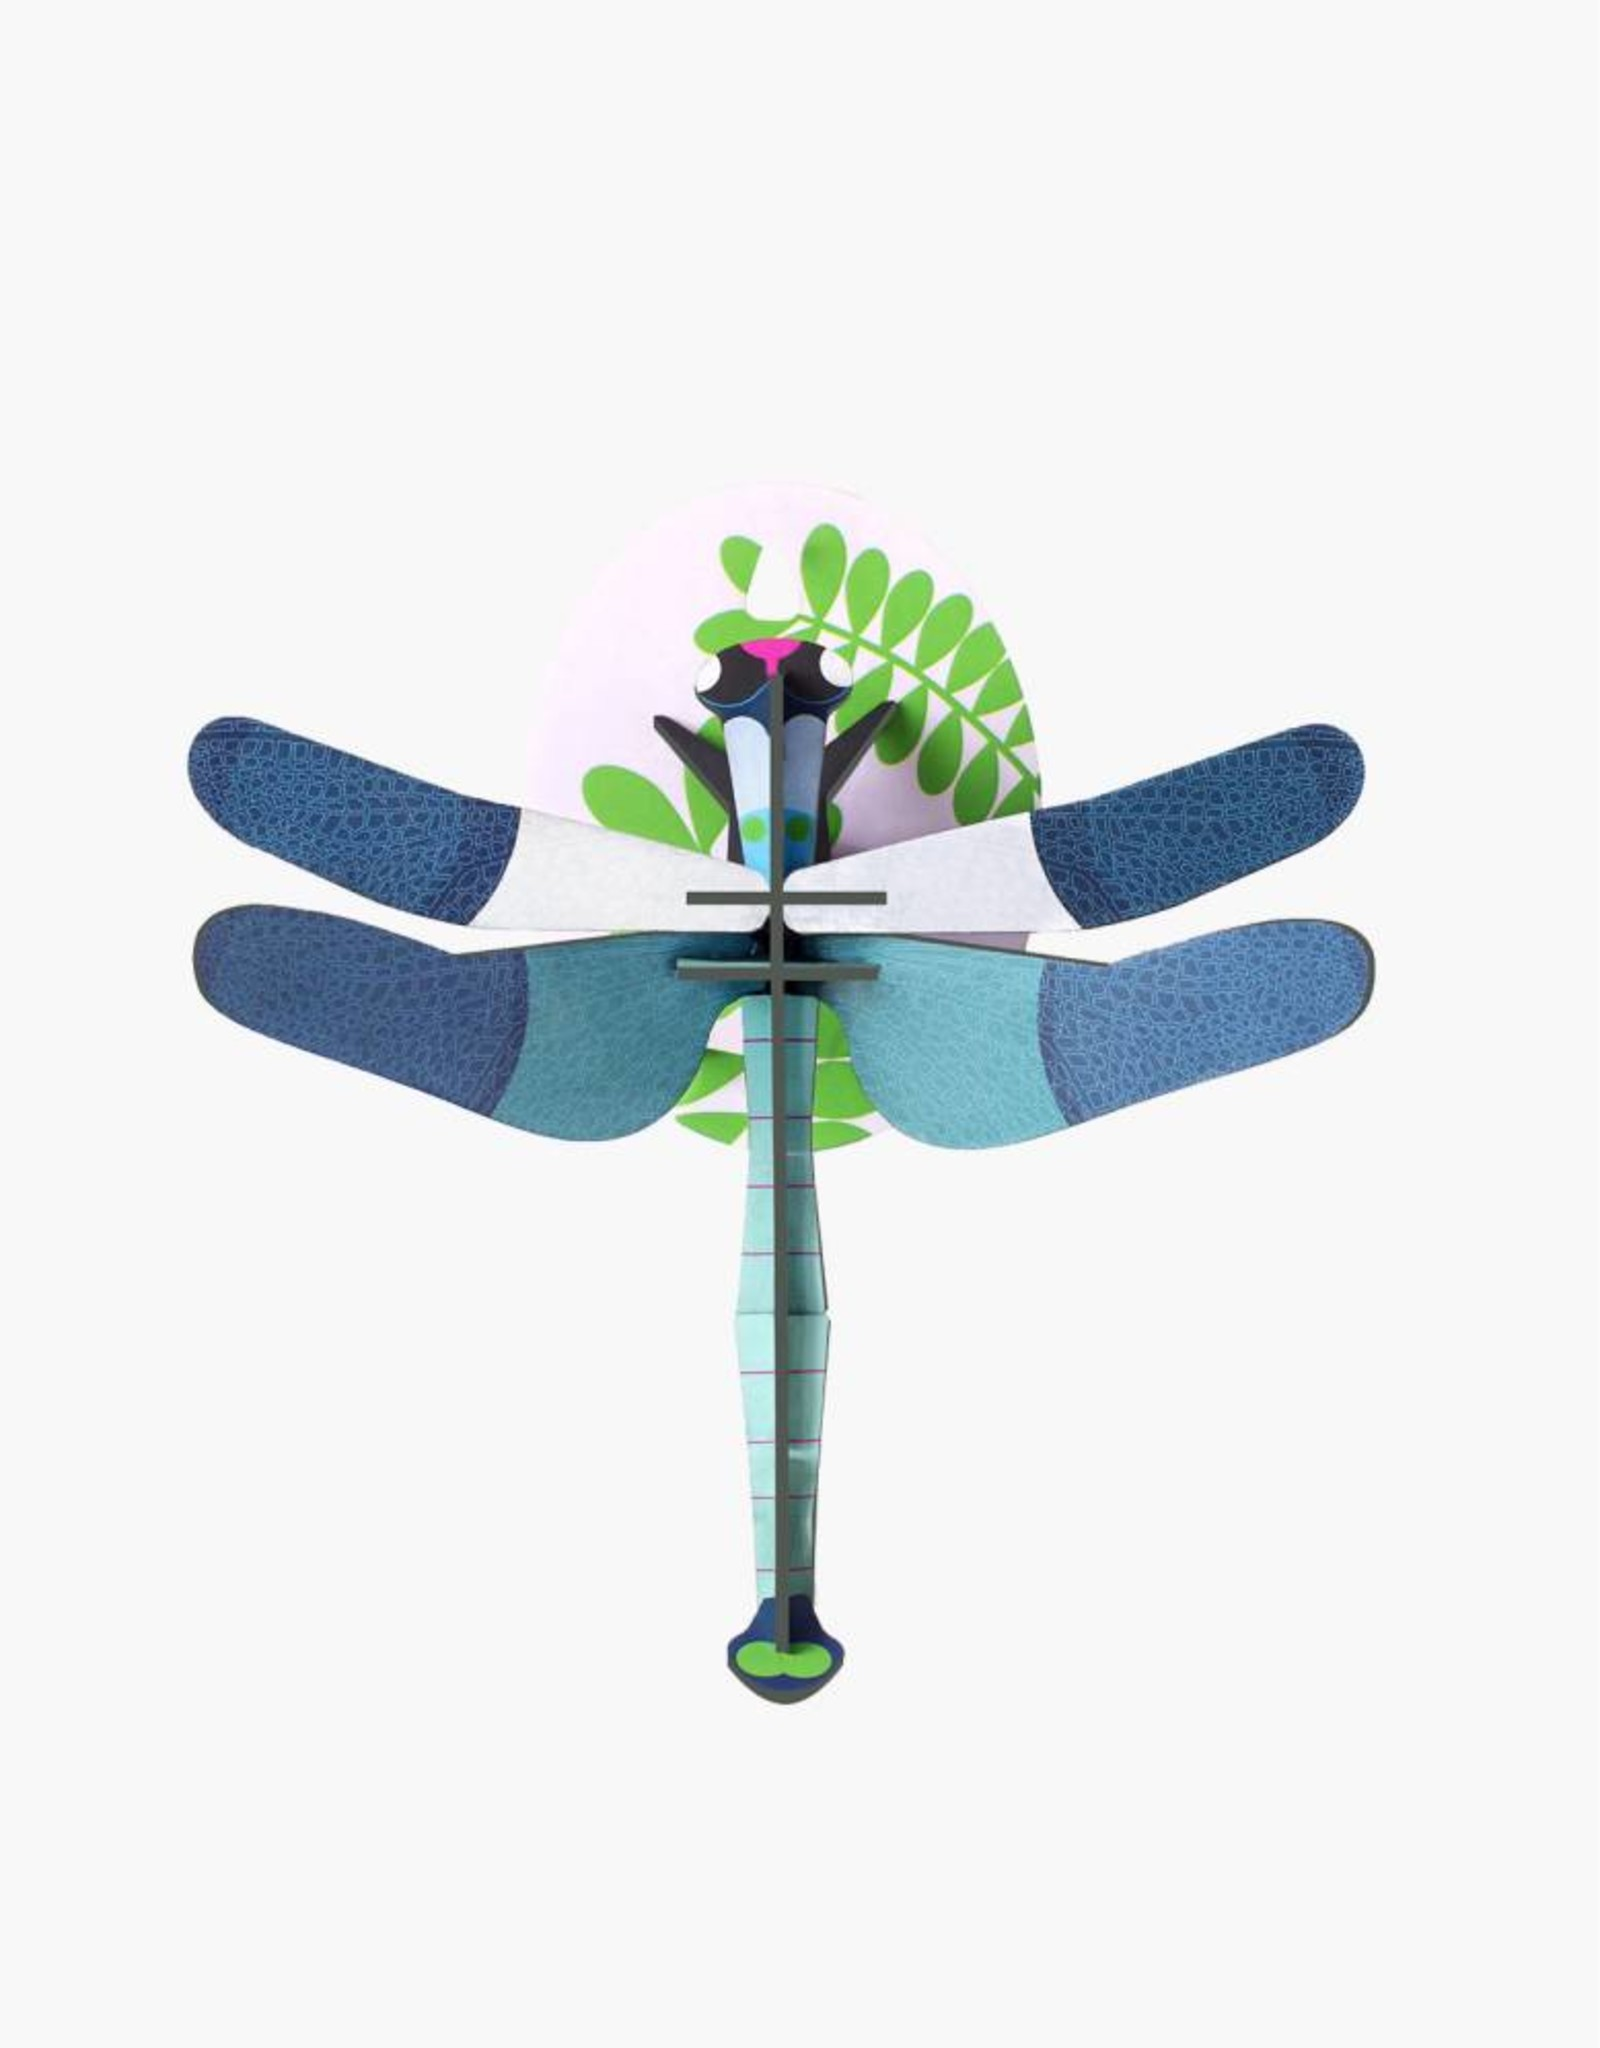 Studioroof Studioroof Little Wonders of Nature Blue Dragonfly